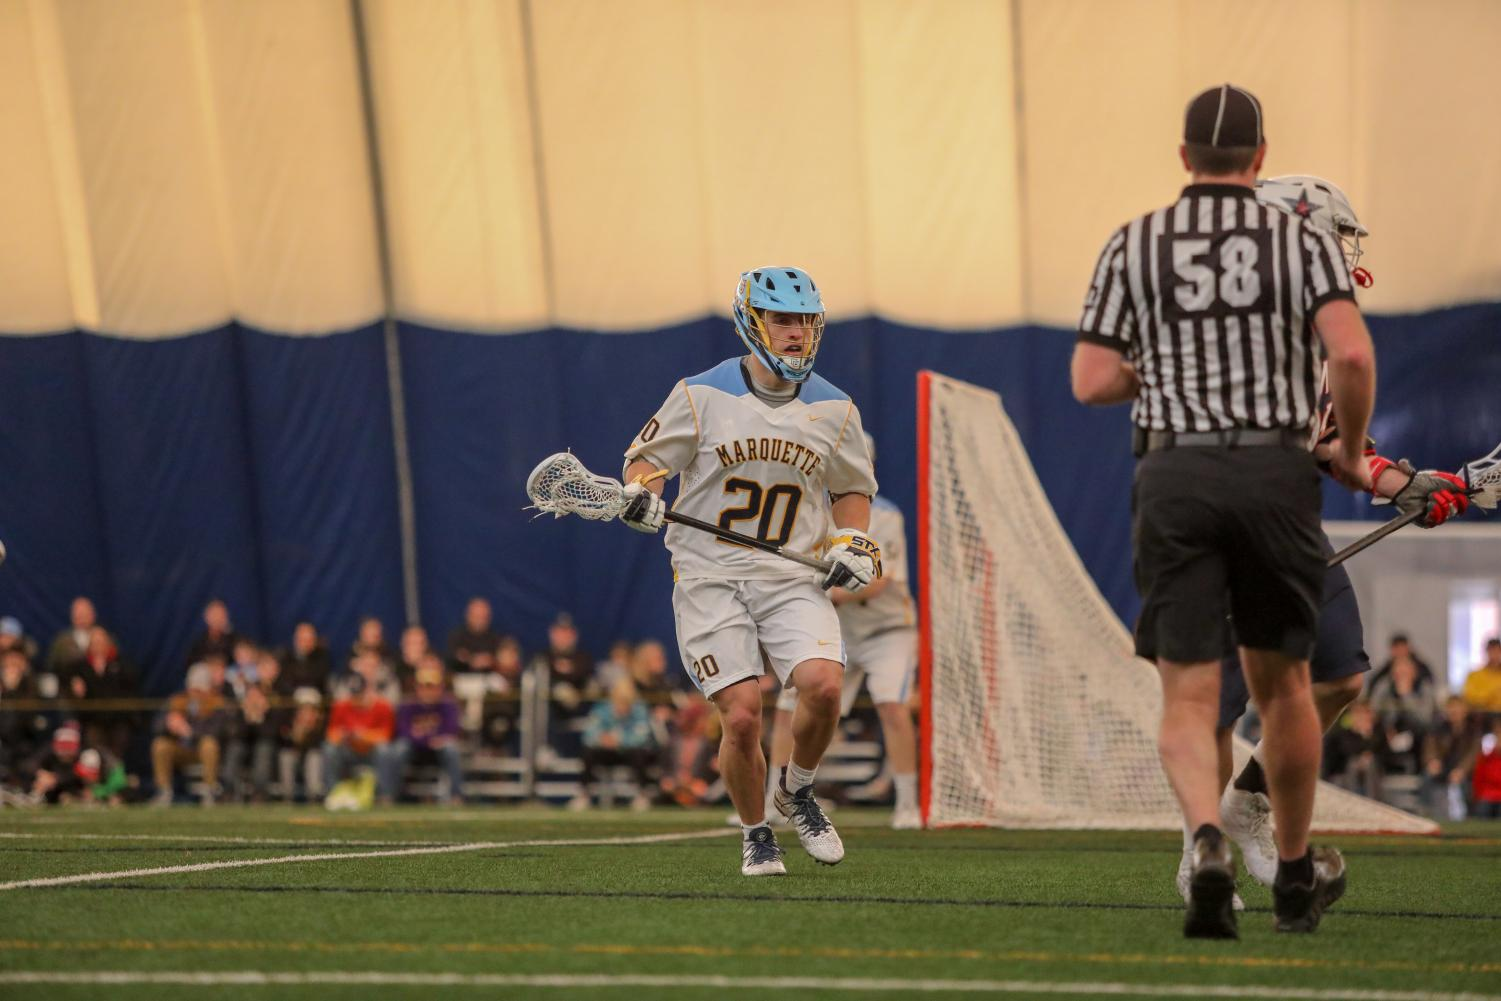 Defender Nick Singleton started on Marquette's lacrosse team as a walk-on and has evolved into a full-time contributor.